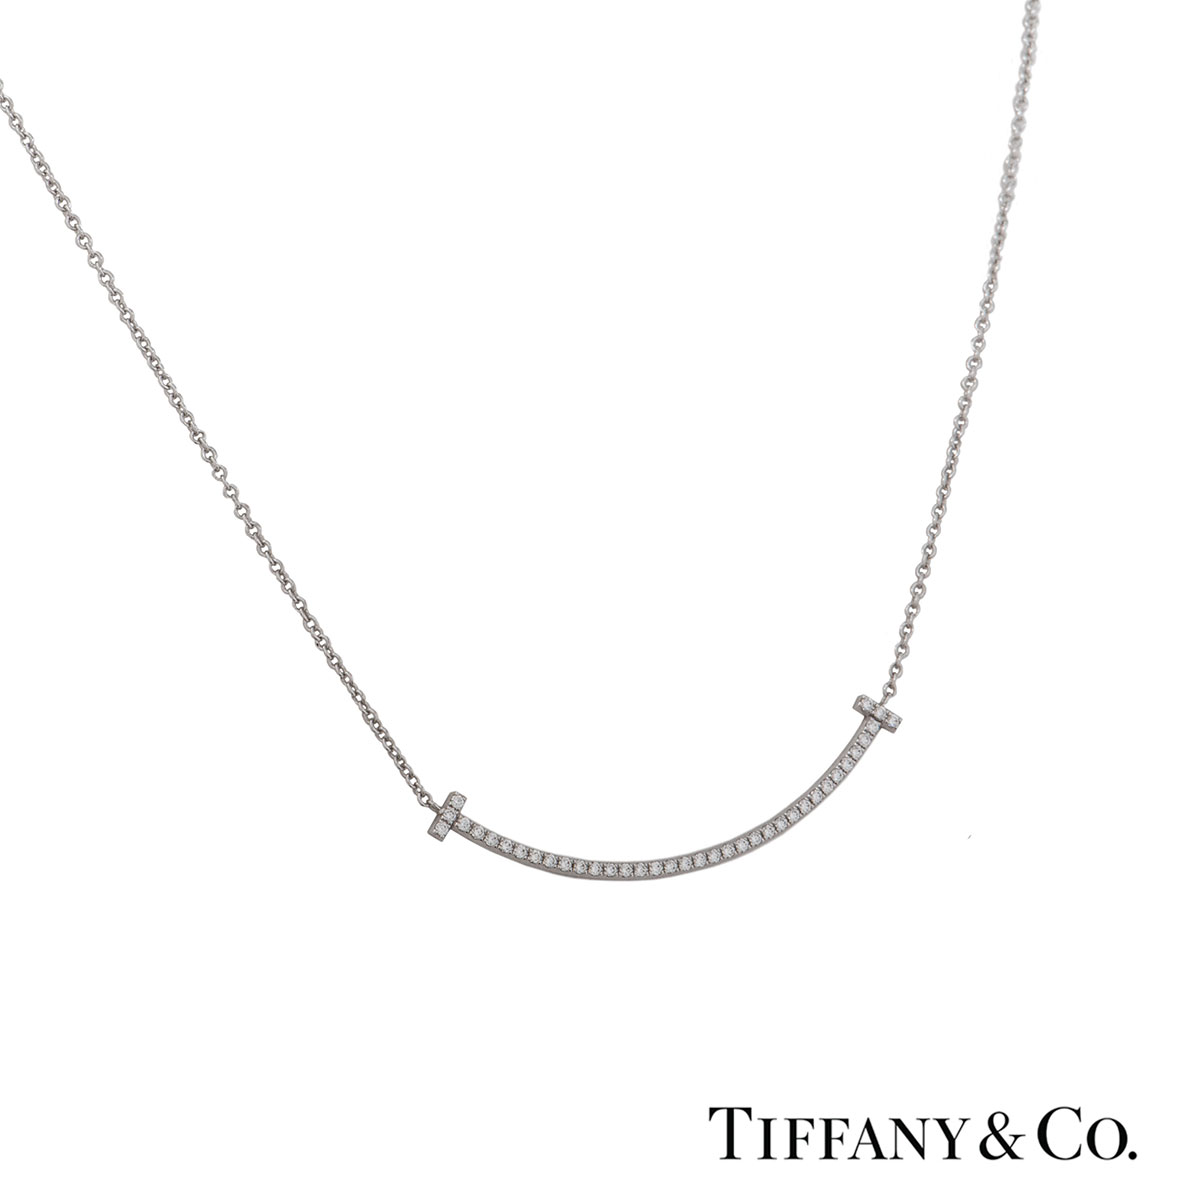 Tiffany & Co. White Gold Diamond T Smile Pendant